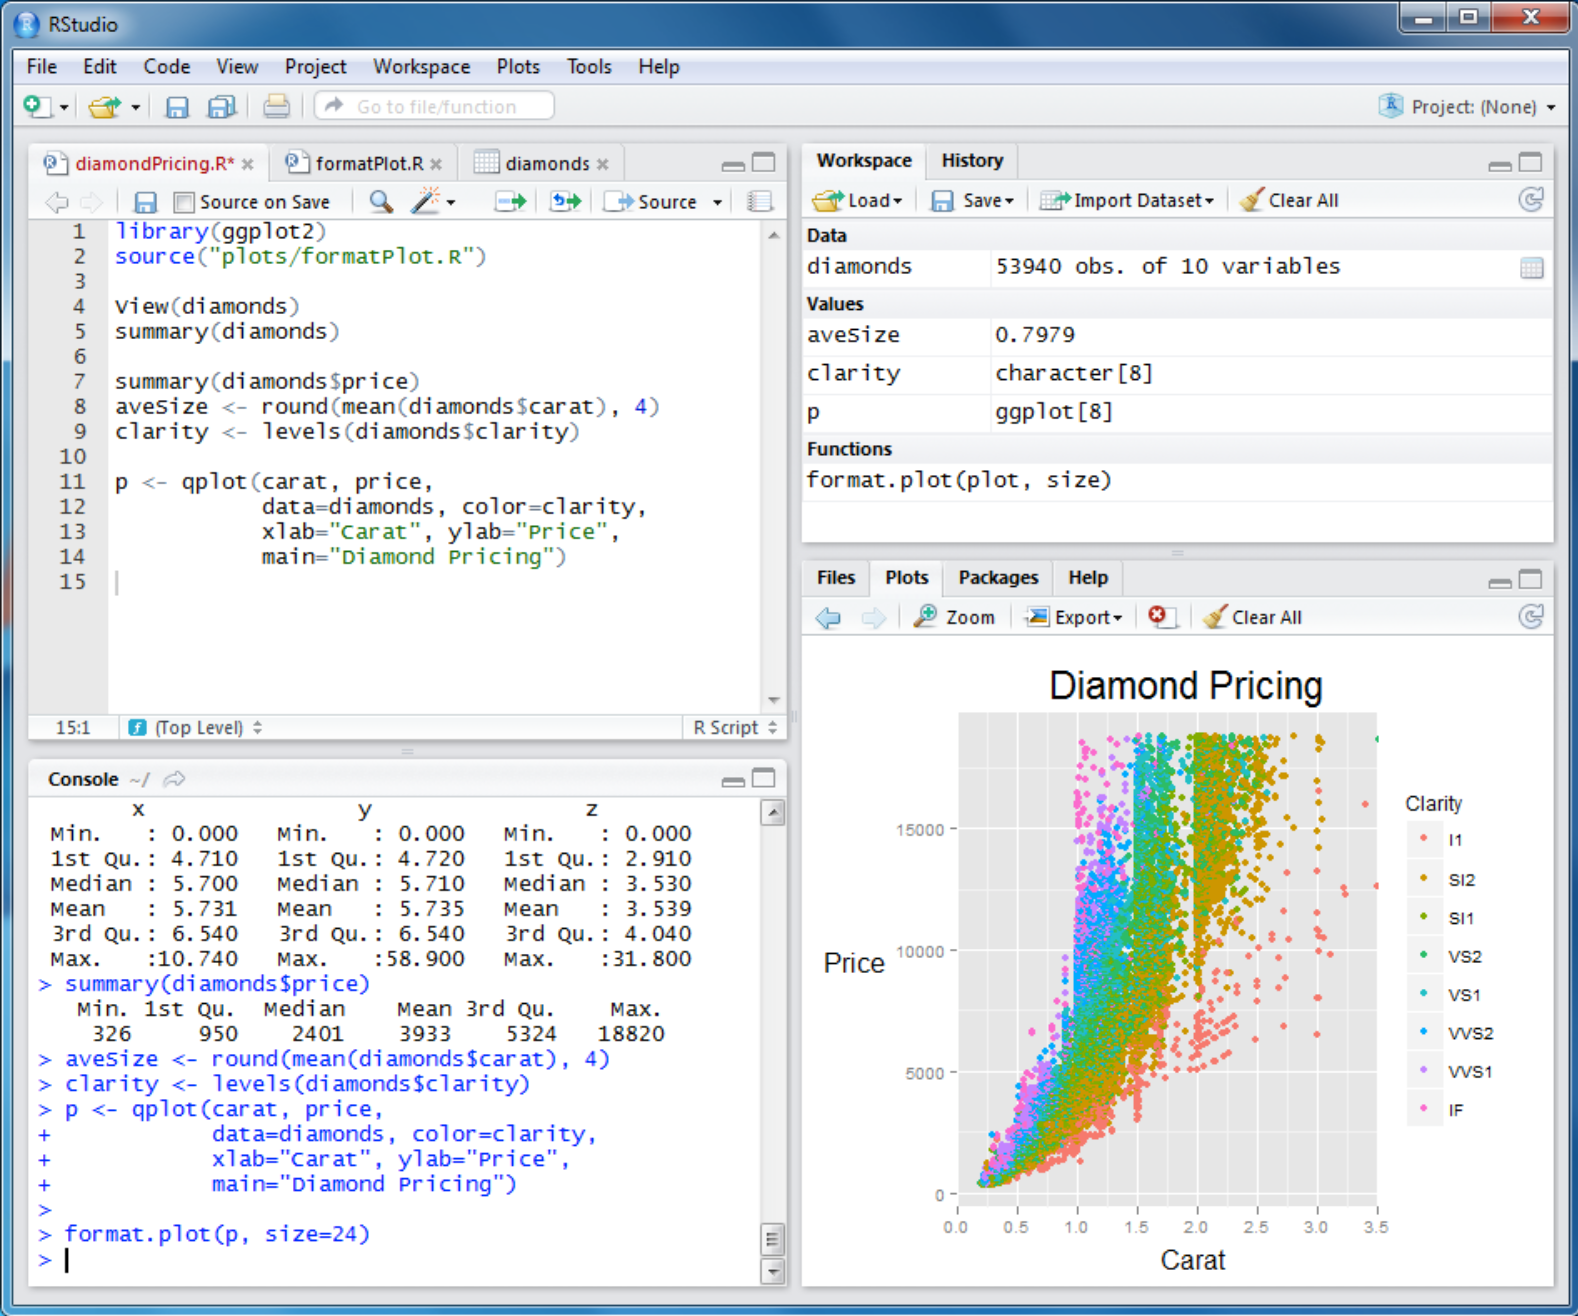 Figure 3: RStudio running on Windows.